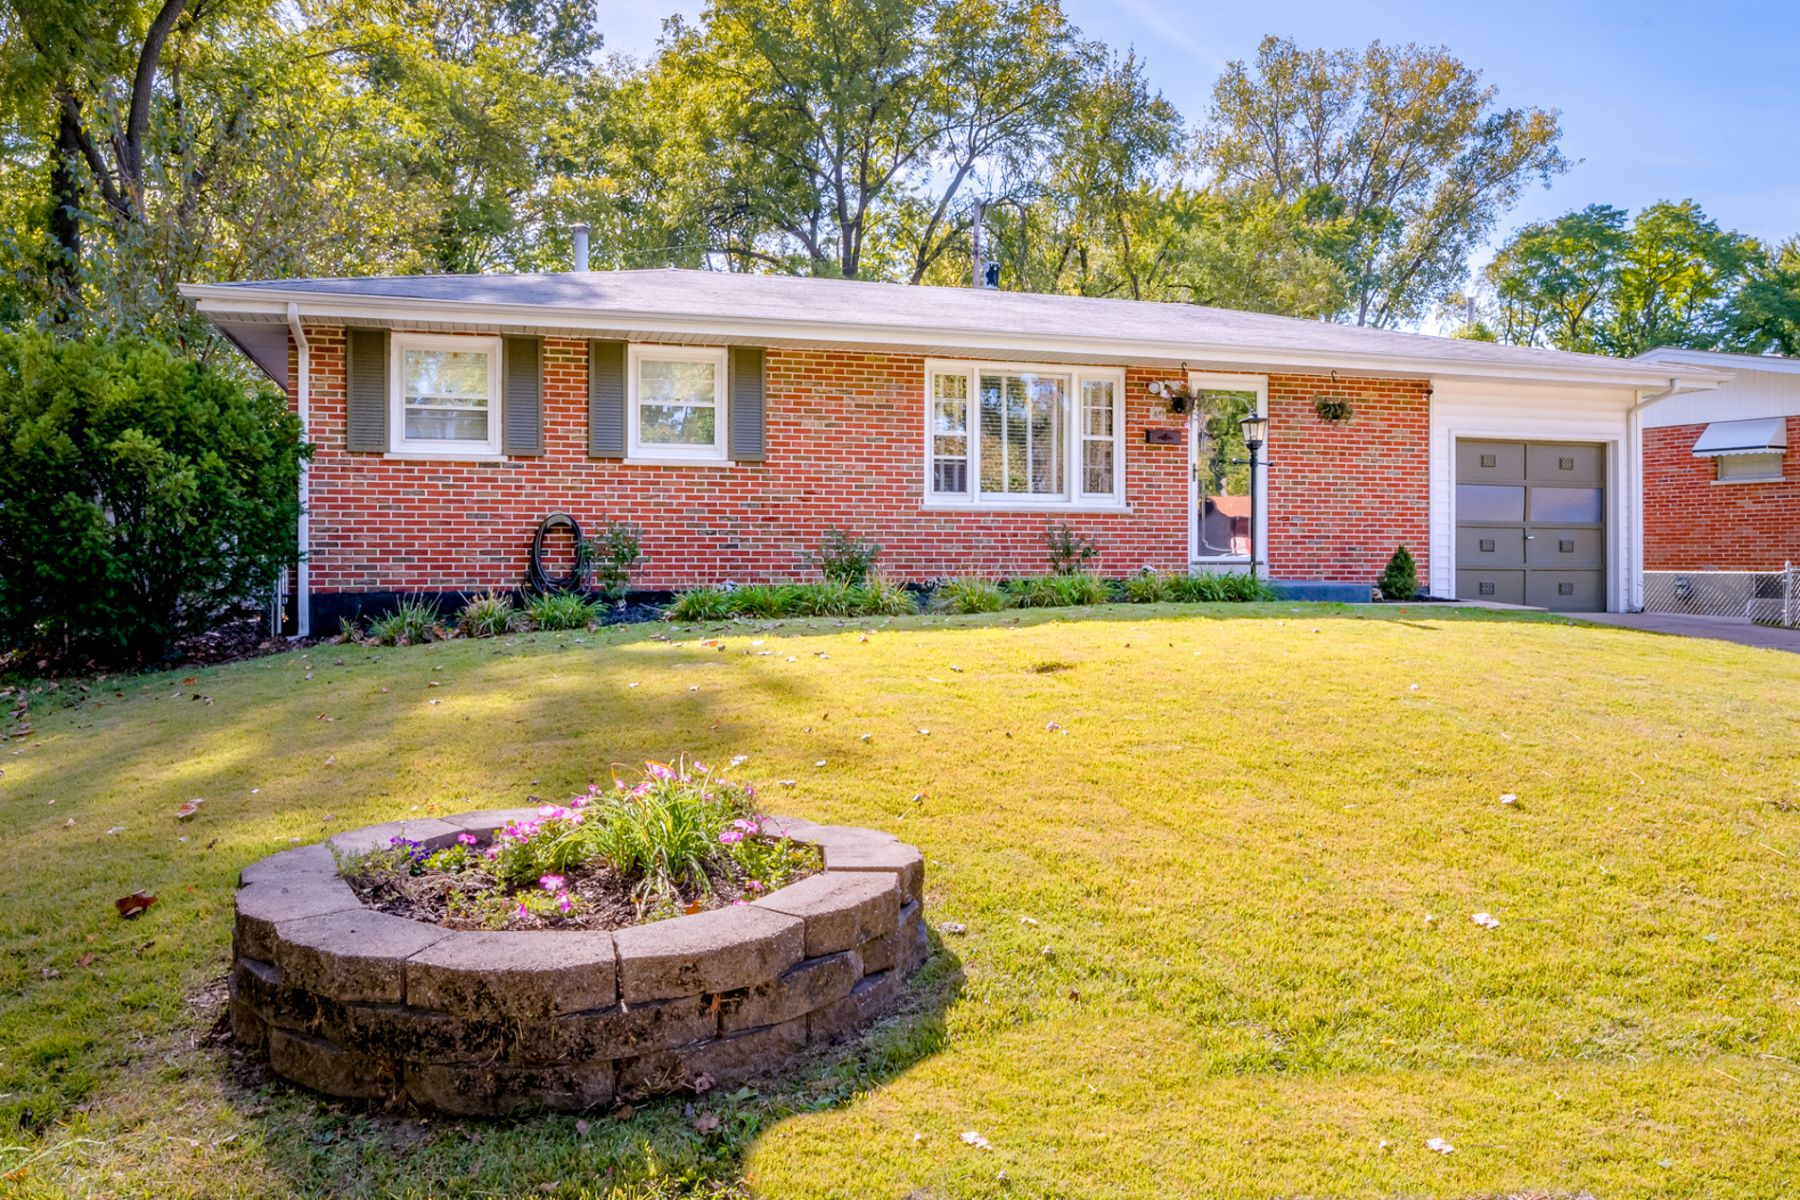 Single Family Home for Sale at Calbreath Ct 40 Calbreath Ct Florissant, Missouri 63031 United States